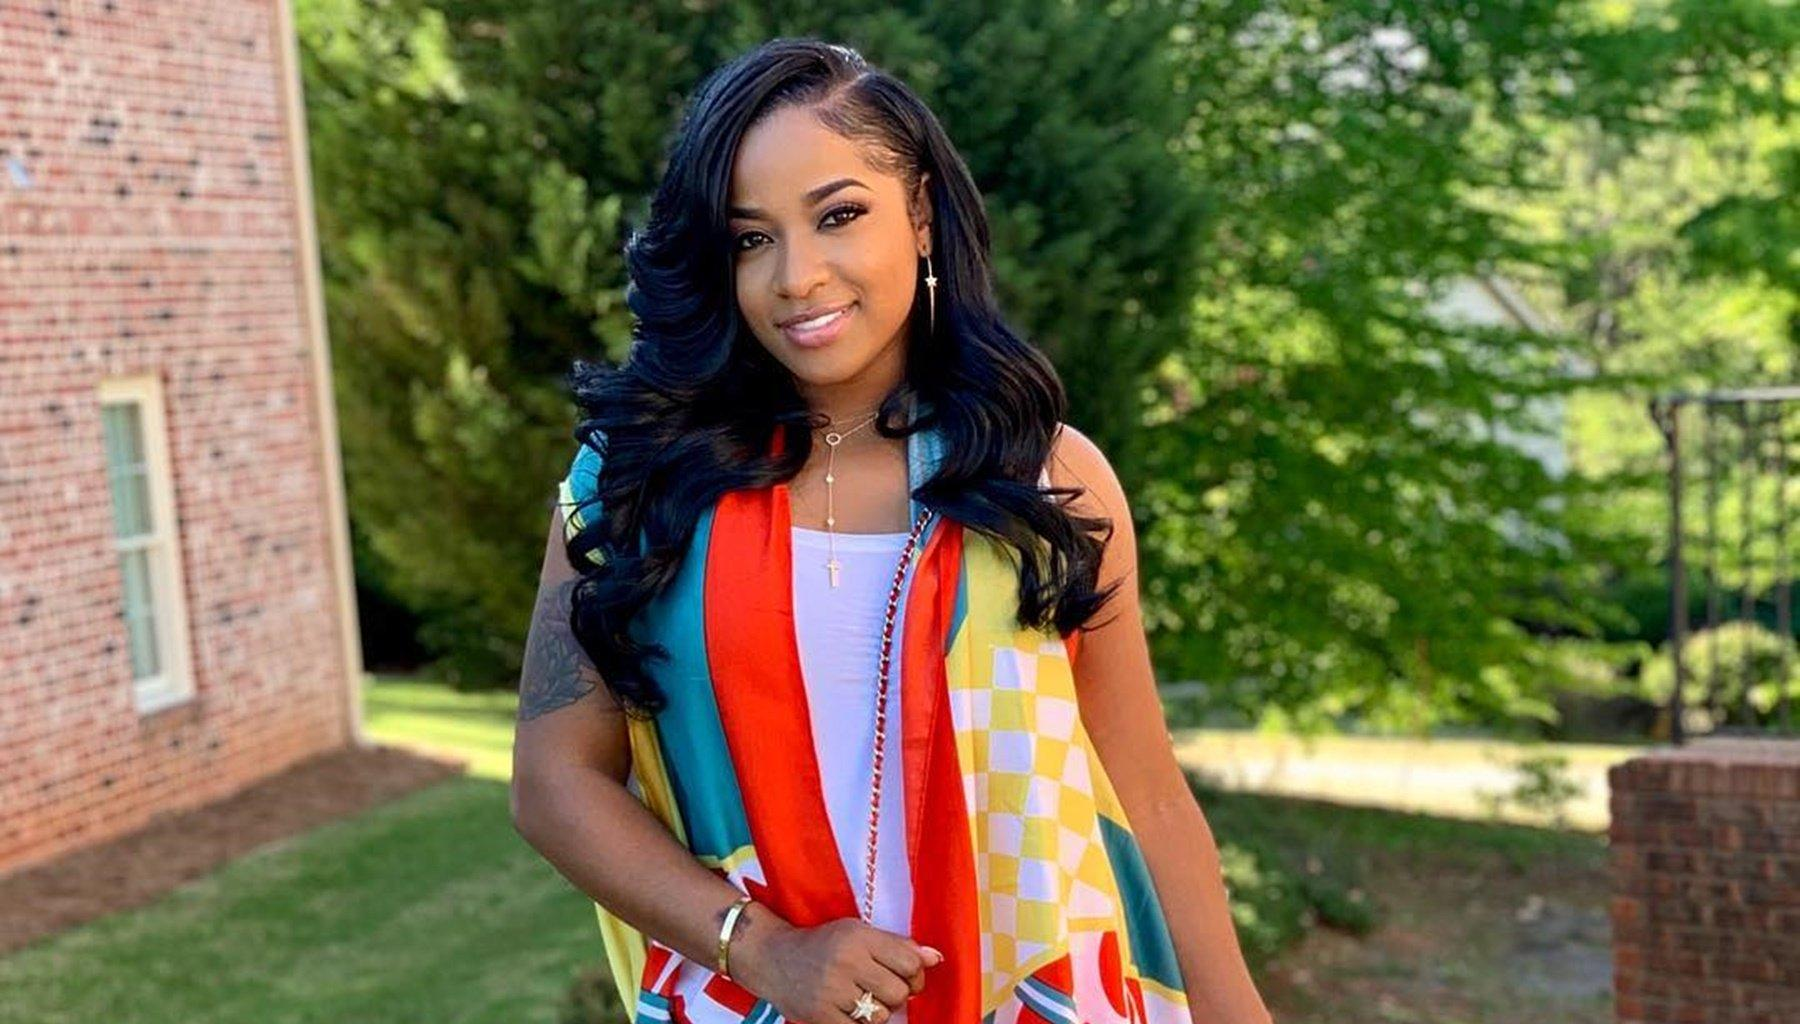 Toya Johnson Is Dreaming Of A Vacay - See Her Sweet Pics From Her Last Trip